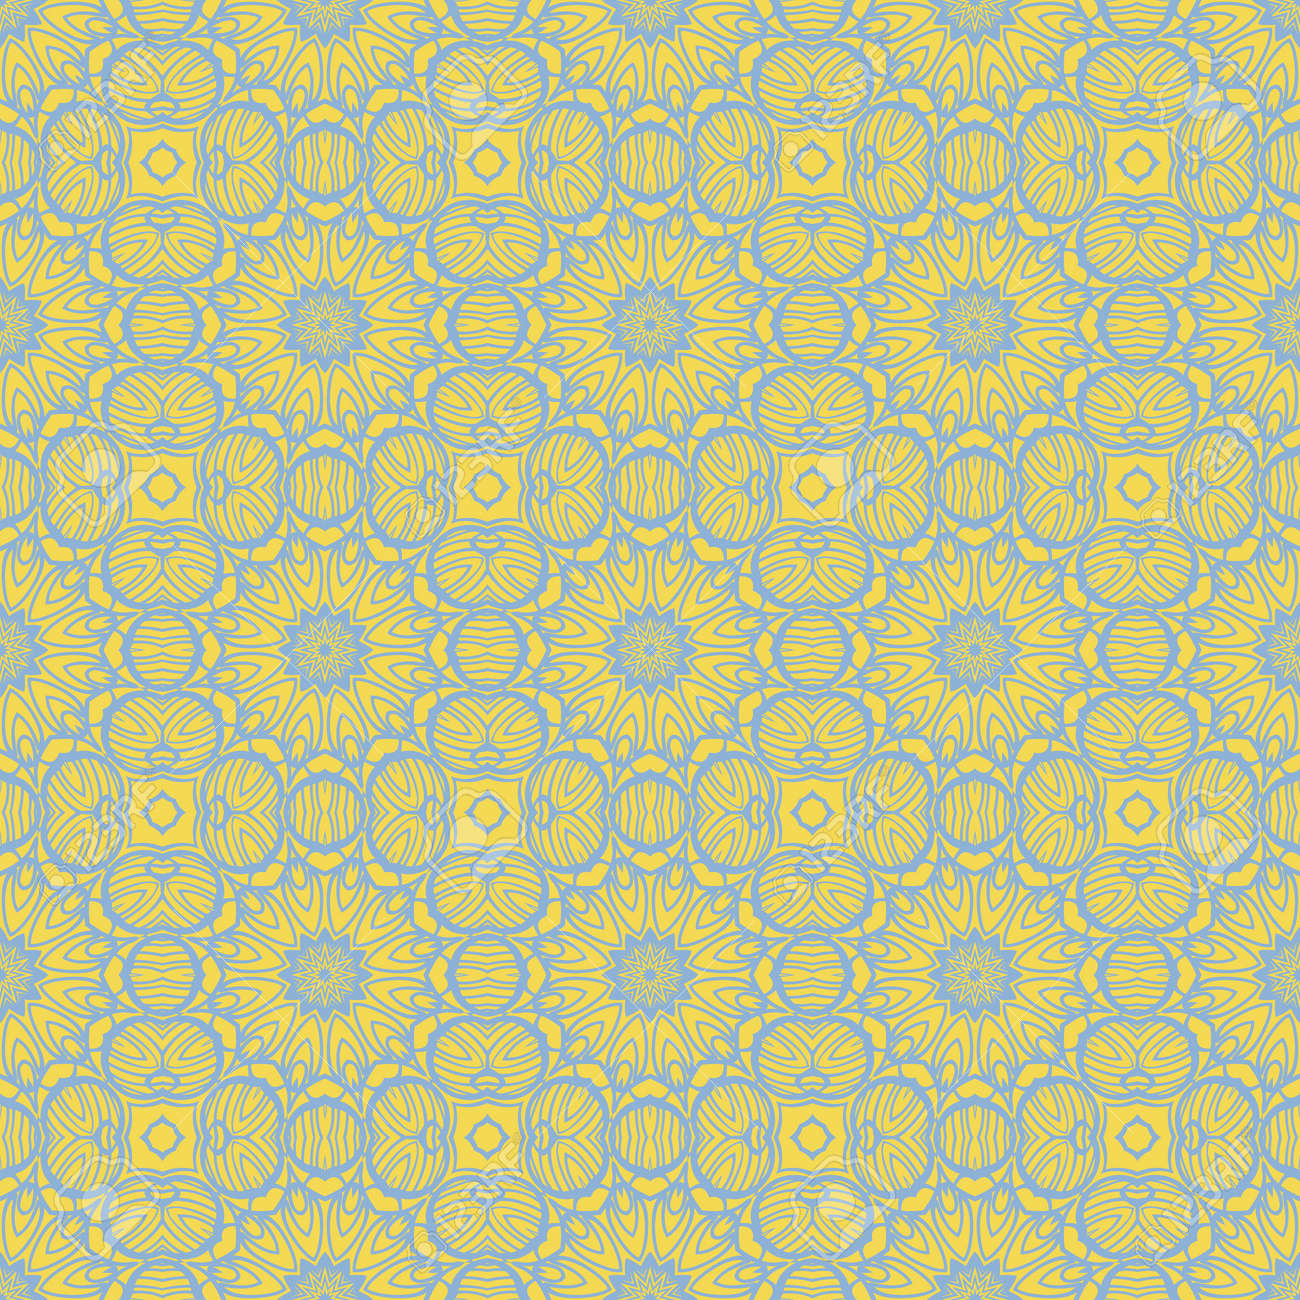 mirror seamless pattern with abstract floral and leave style. Repeating sample figure and line. For modern interiors design, wallpaper, textile industry. Vector illustration - 168017577